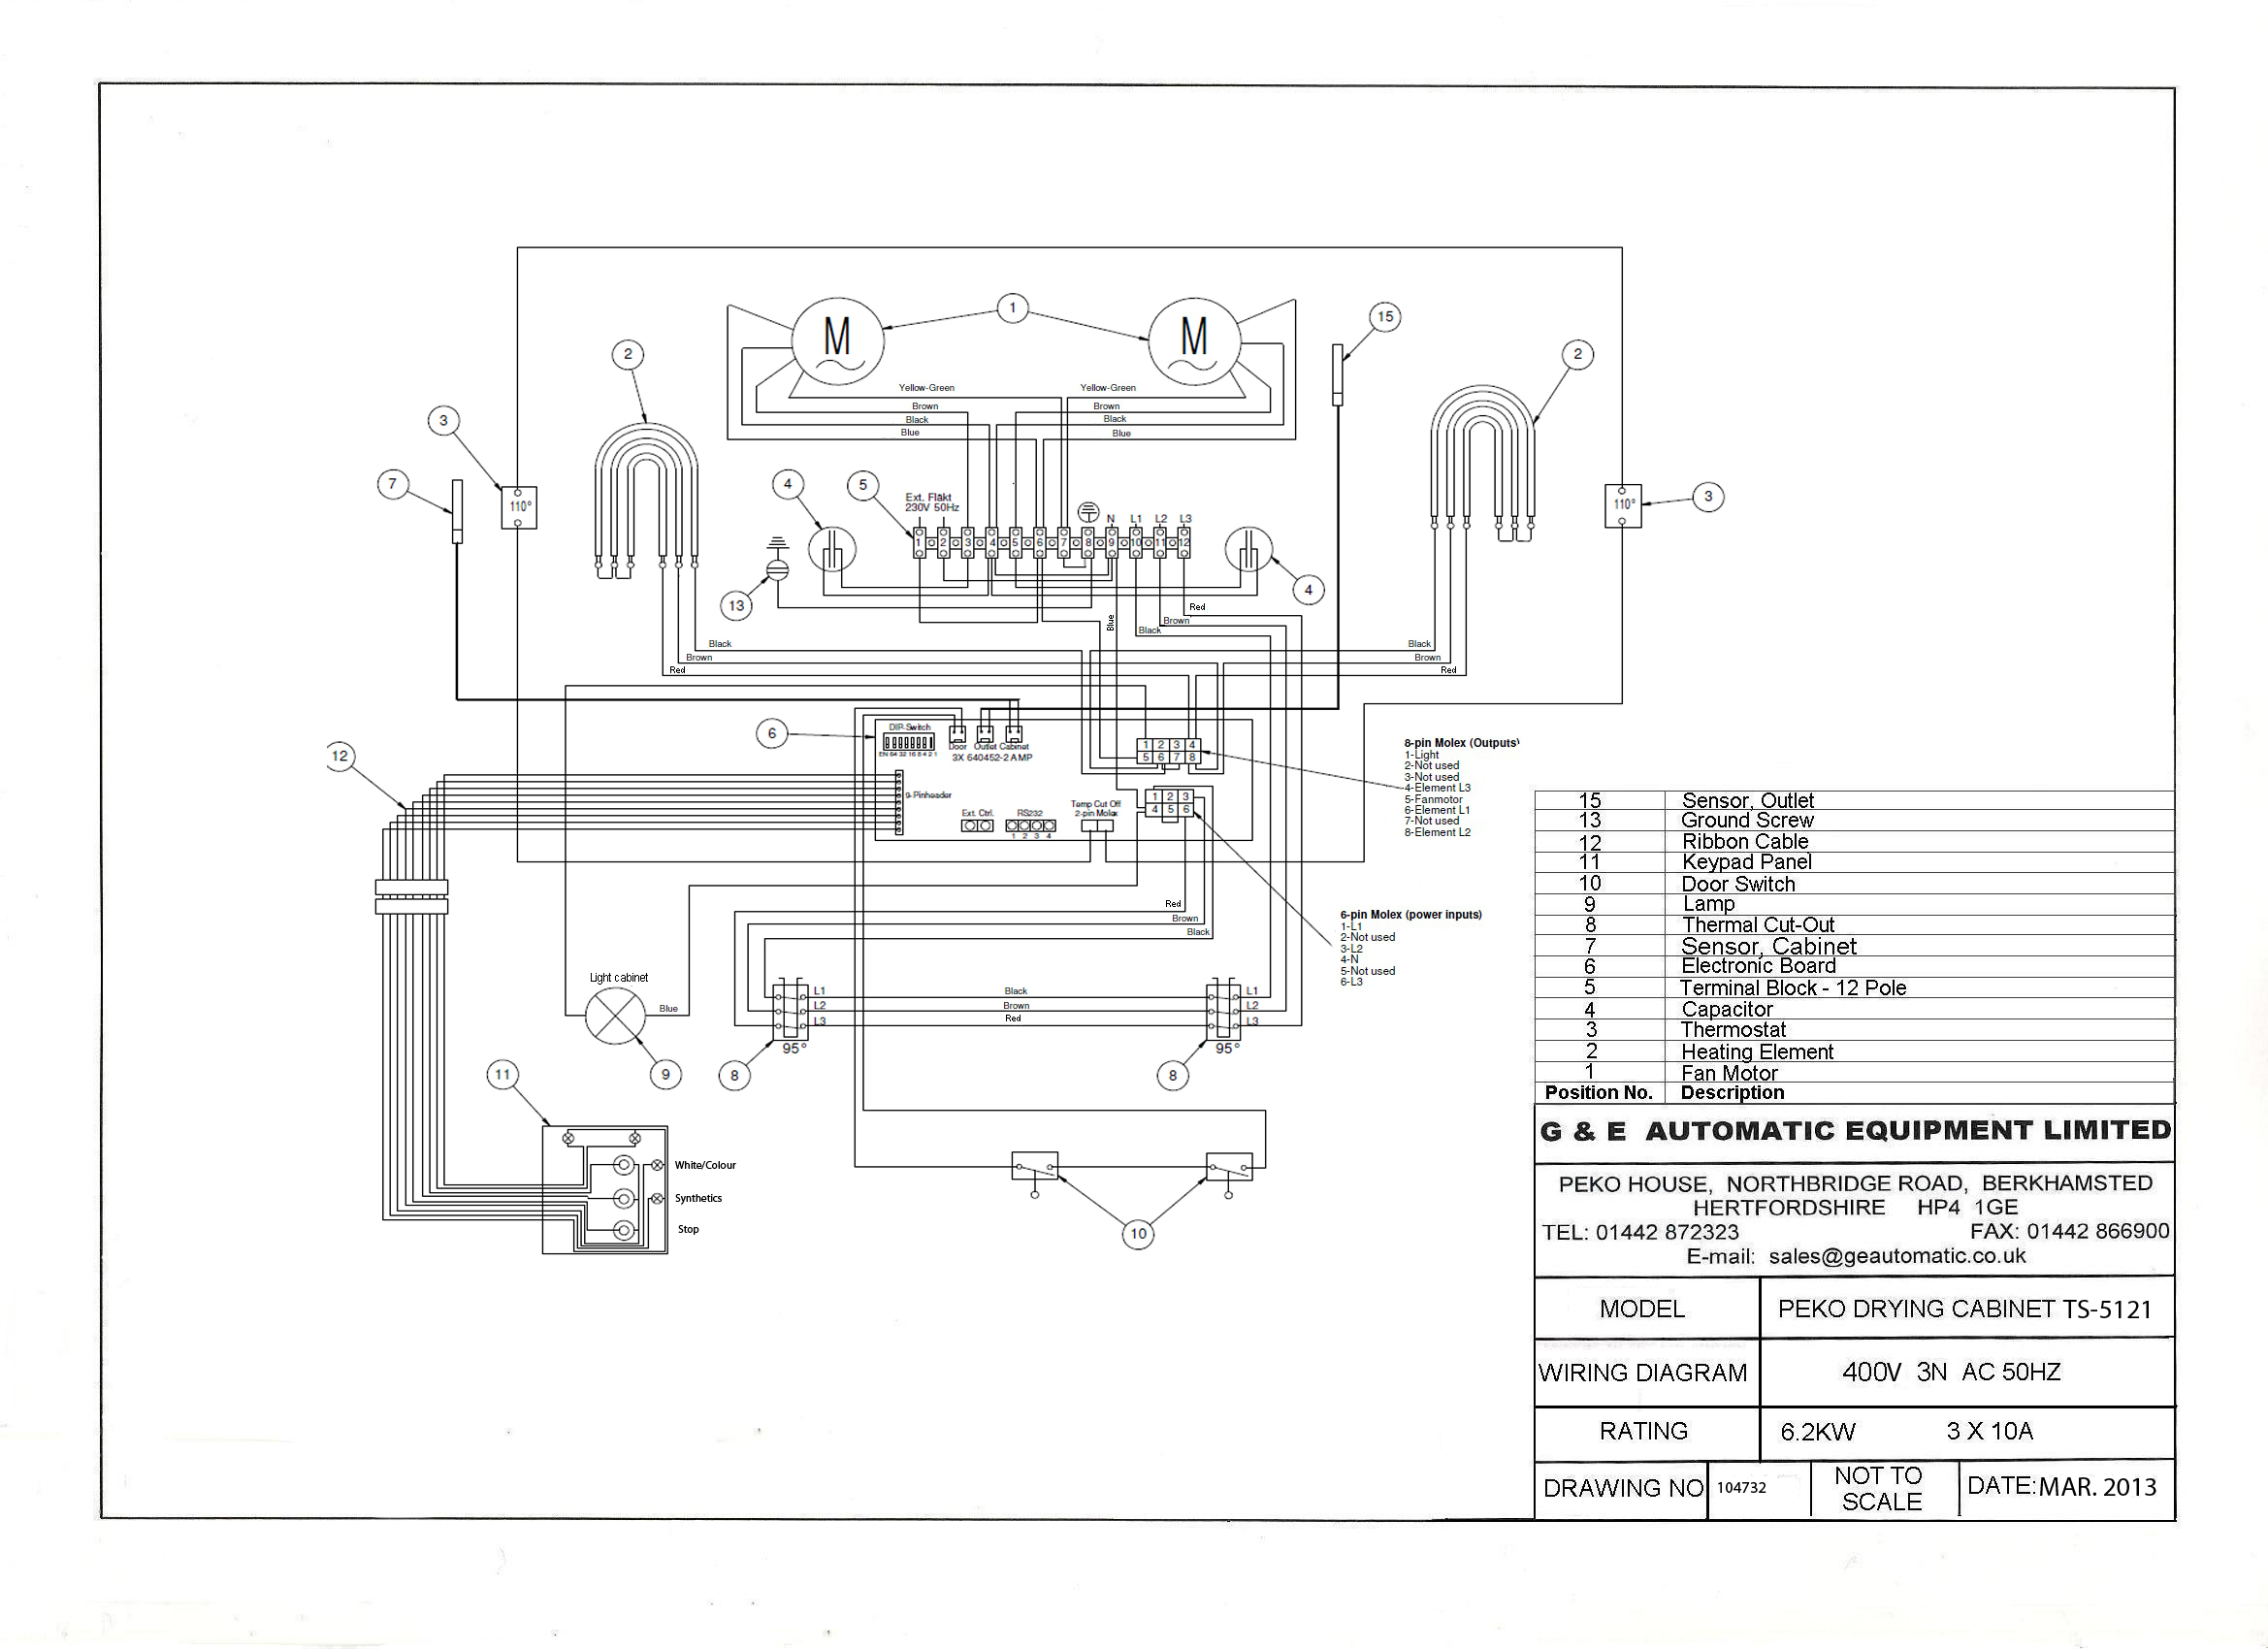 Dry Motor Wiring Diagram Get Free Image About Diy Diagrams Peko Drying Cabinets Rh Pekodryingcabinets Co Uk